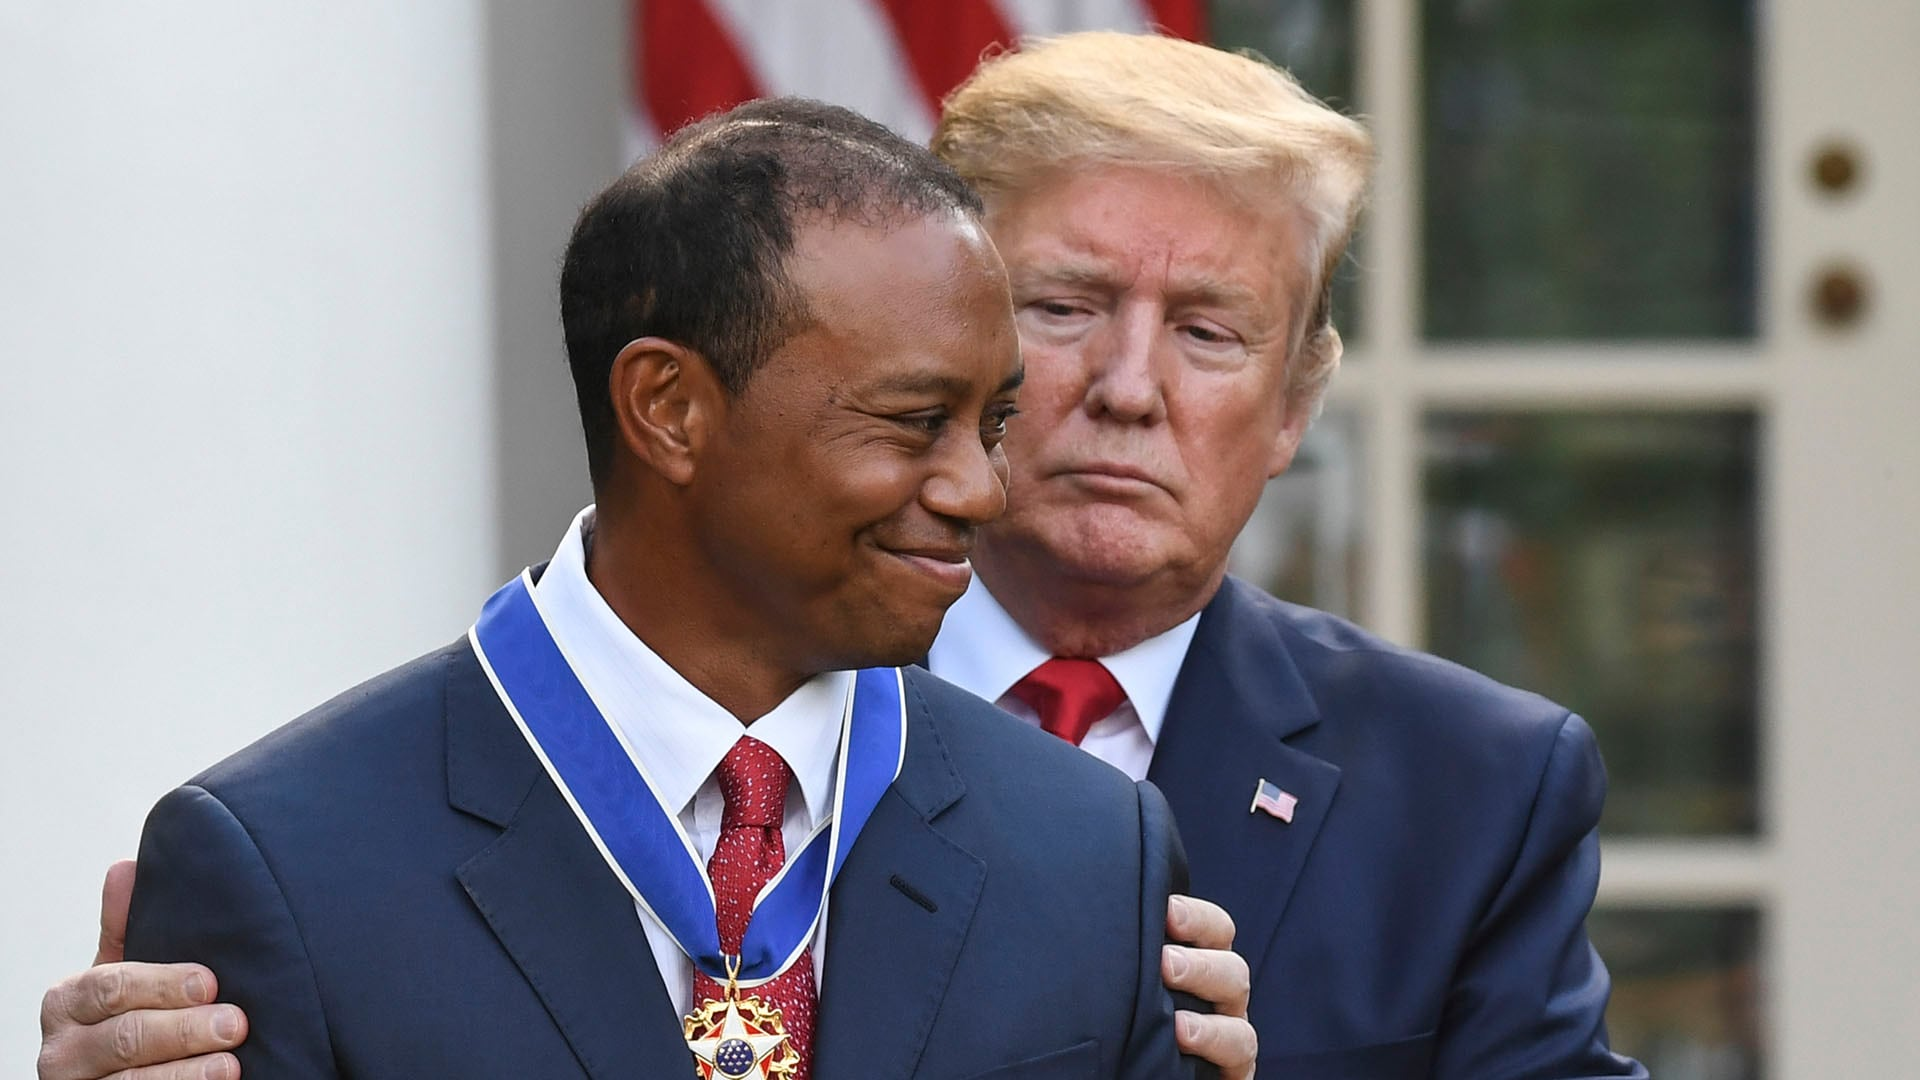 Tiger Woods and President Donald Trump